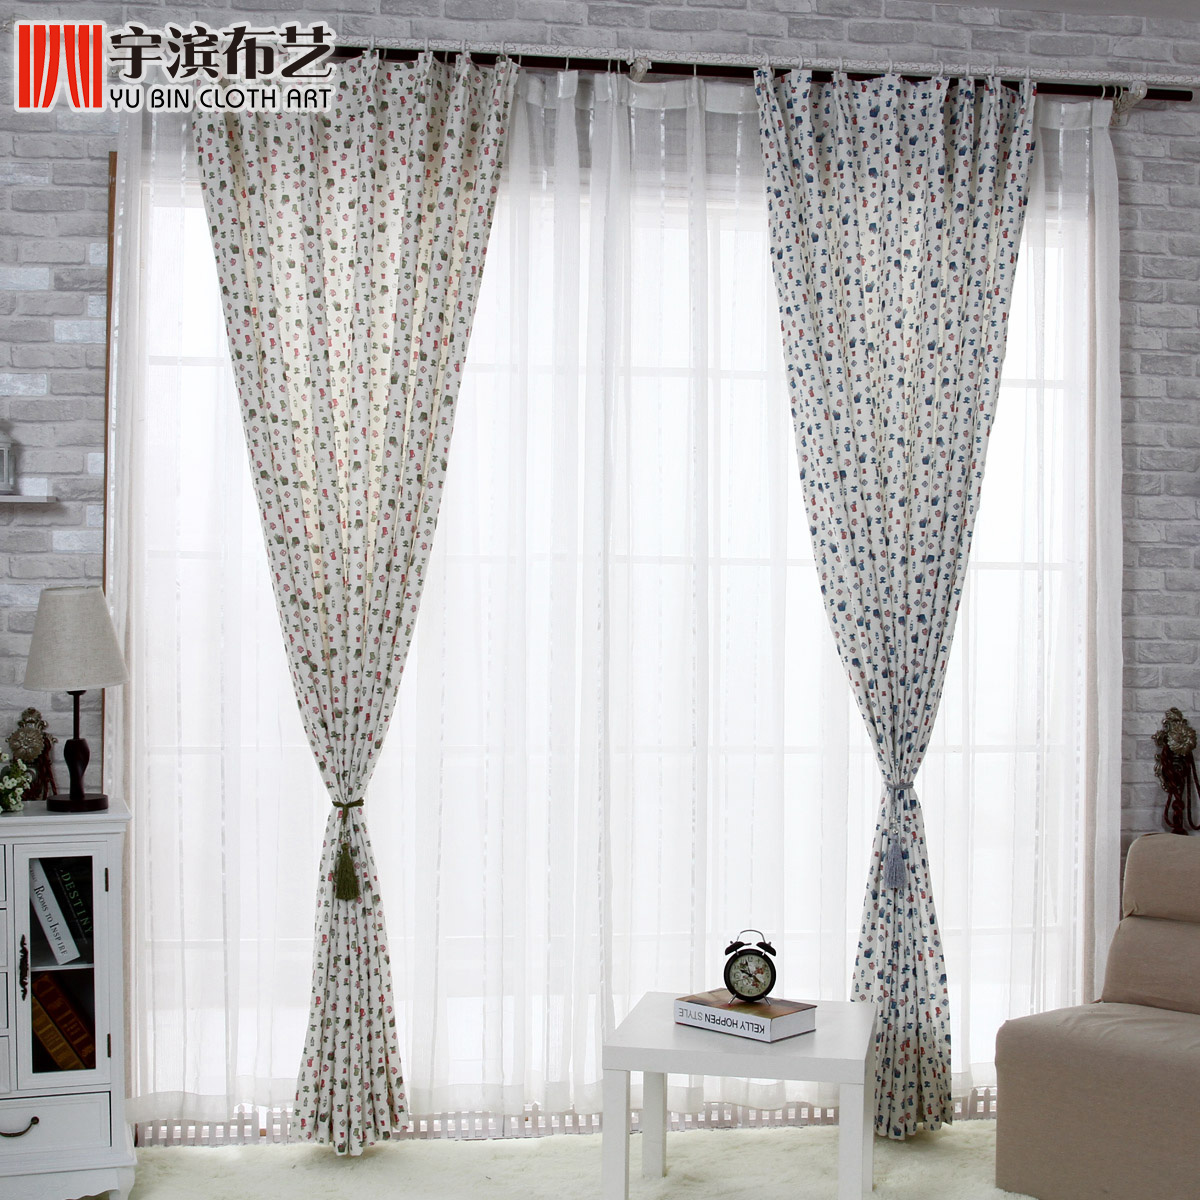 Think Hanyu bin cloth finished half shade shade curtains the living room bedroom high-grade special package mail